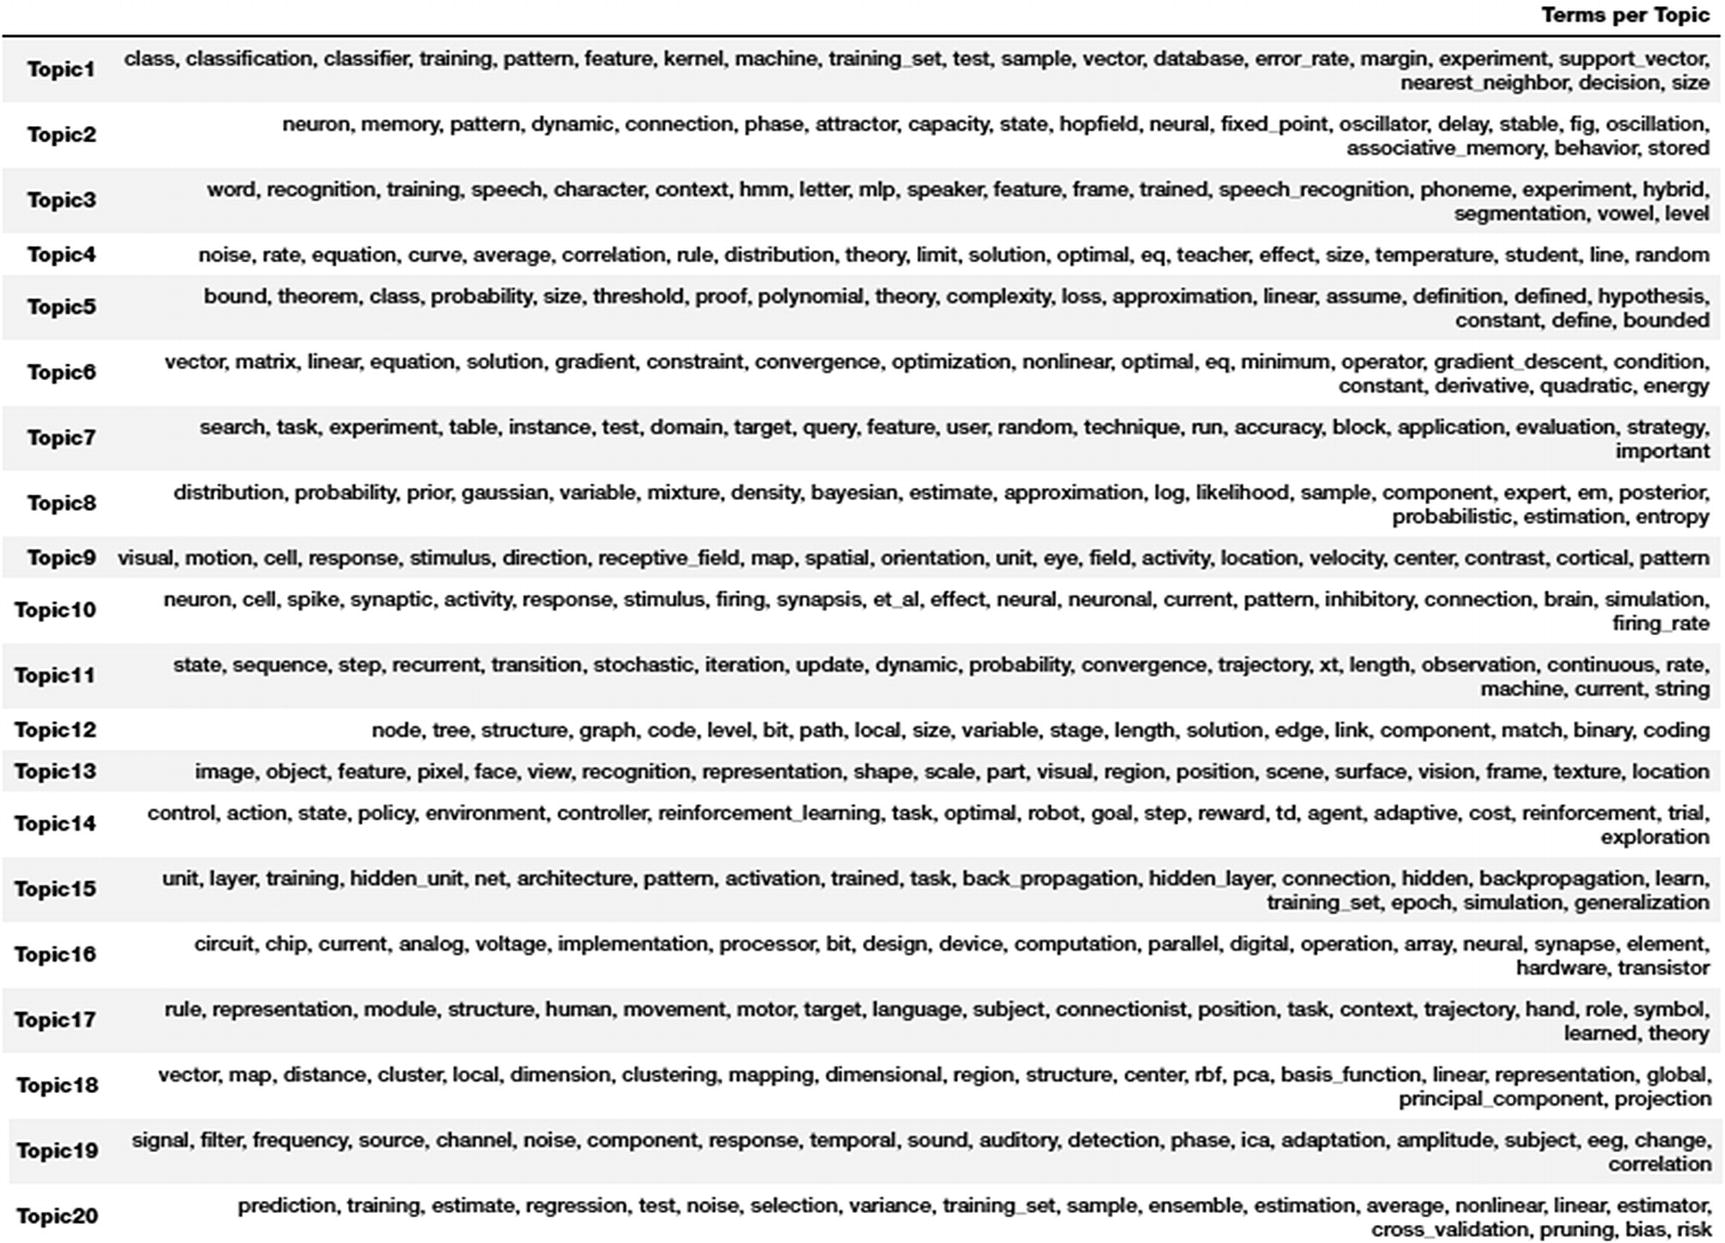 Text Summarization and Topic Models | SpringerLink